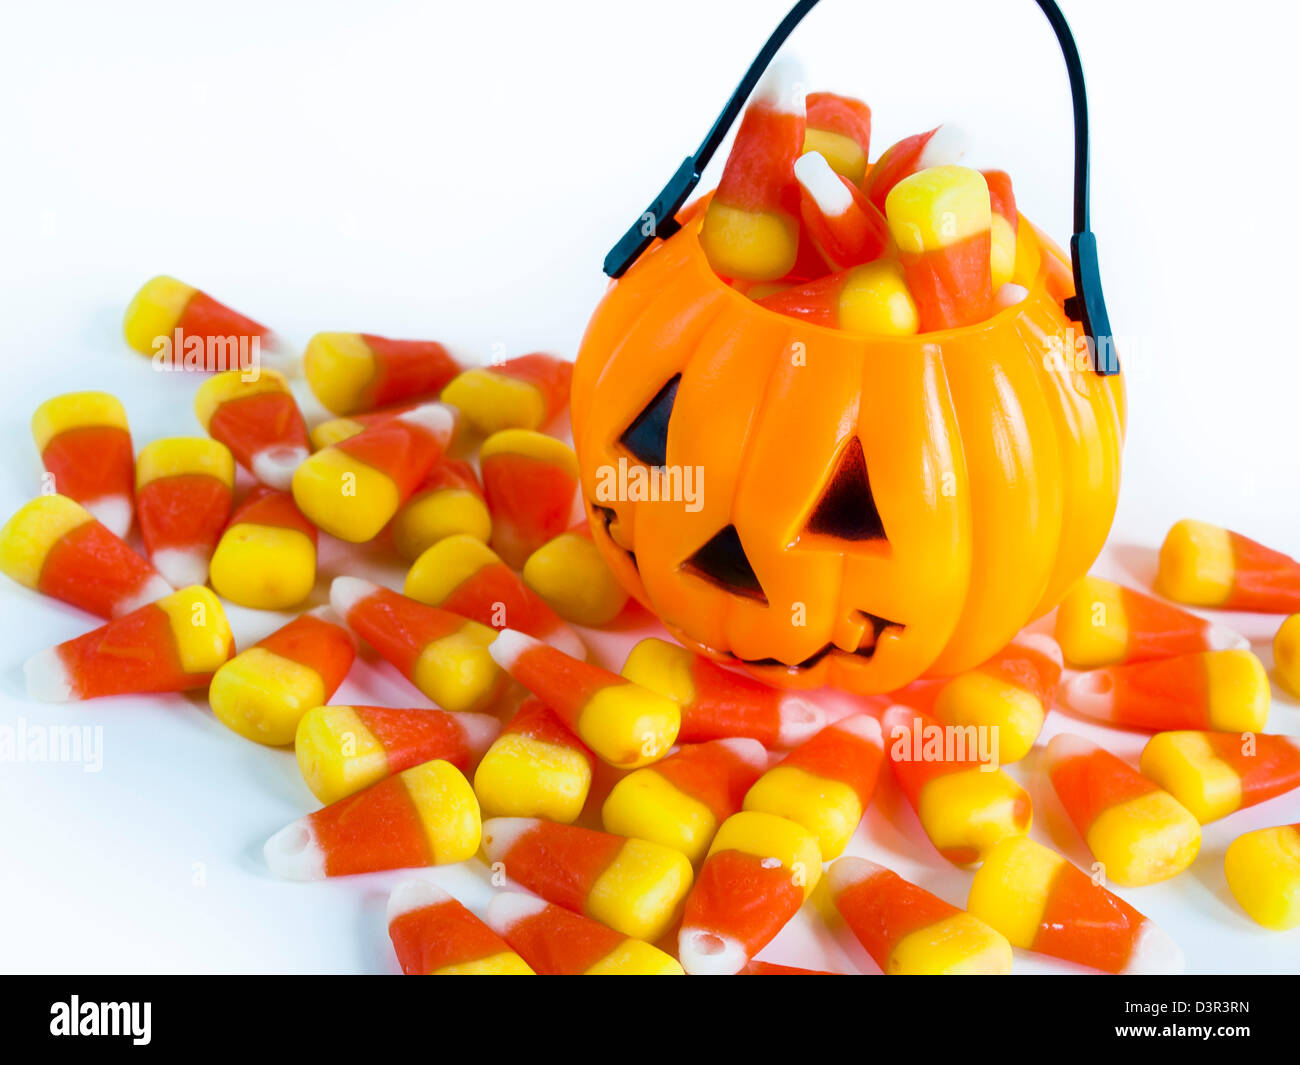 Fold the bag in half with the right sides facing you and match up the color strips. Halloween Treat Bag Filled With Candy Corn Candies On White Background Stock Photo Alamy